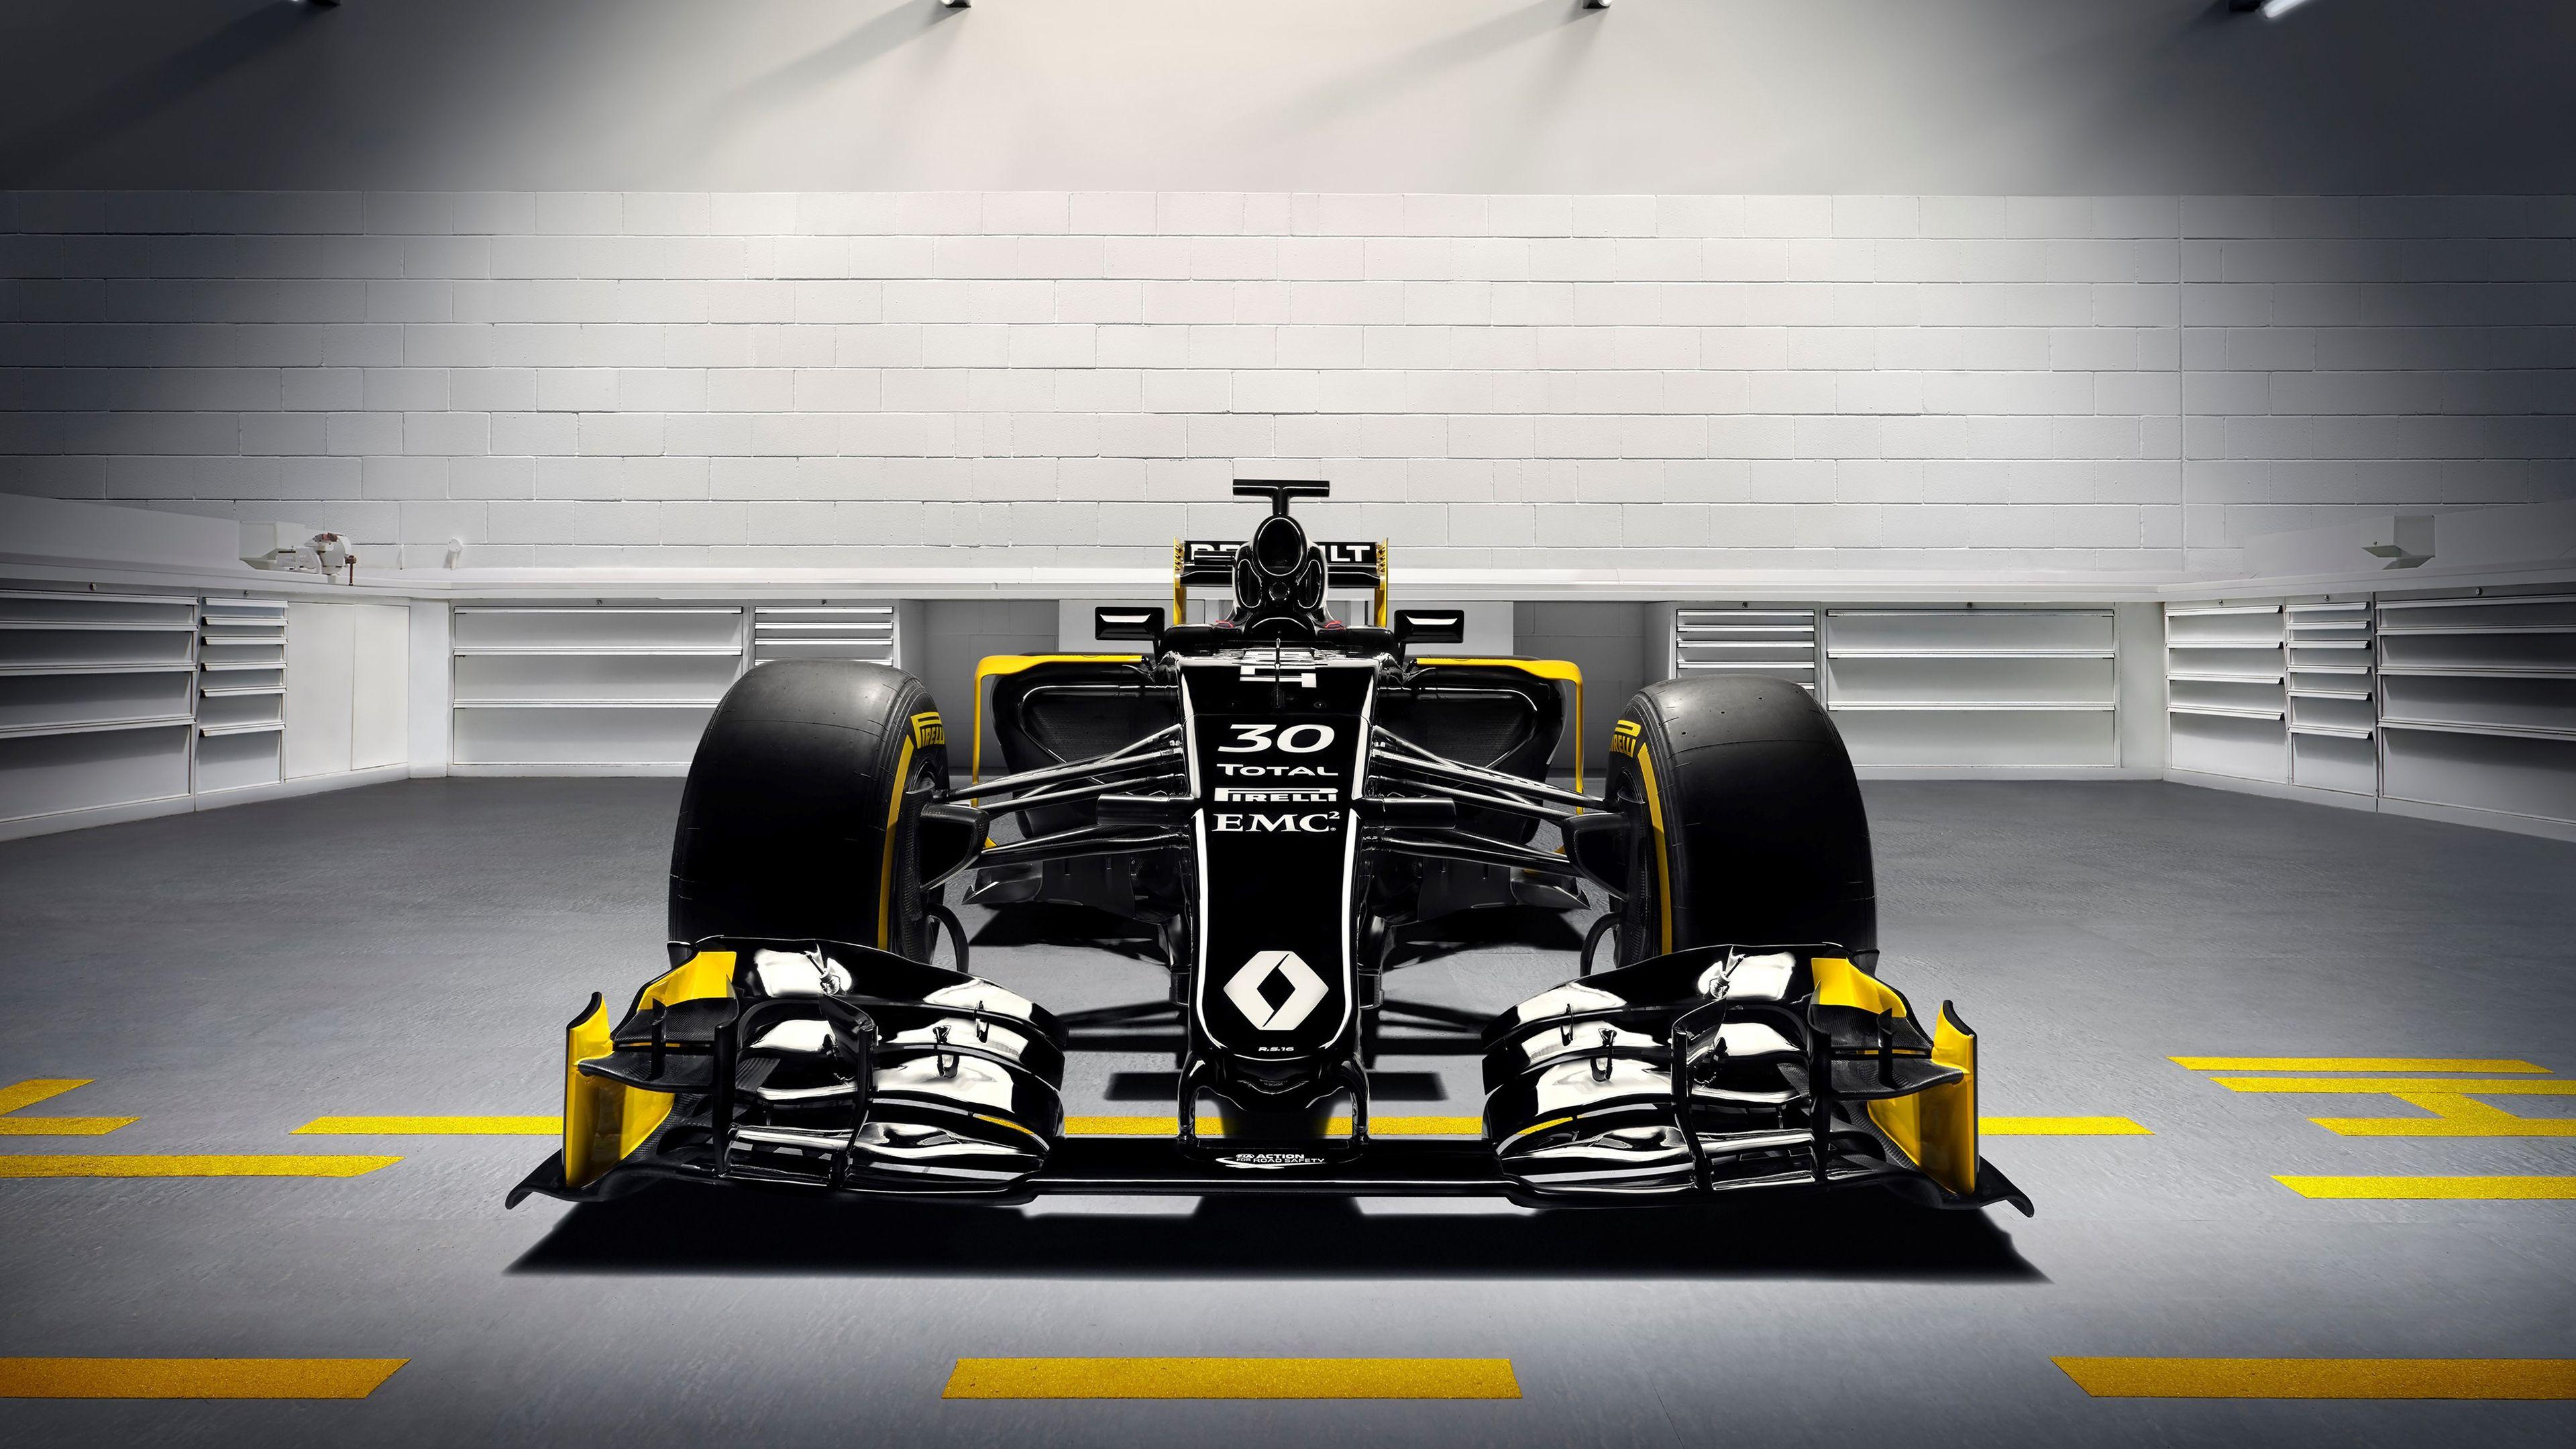 (1) an equation or expression. F1 Car Wallpapers Wallpaper Cave